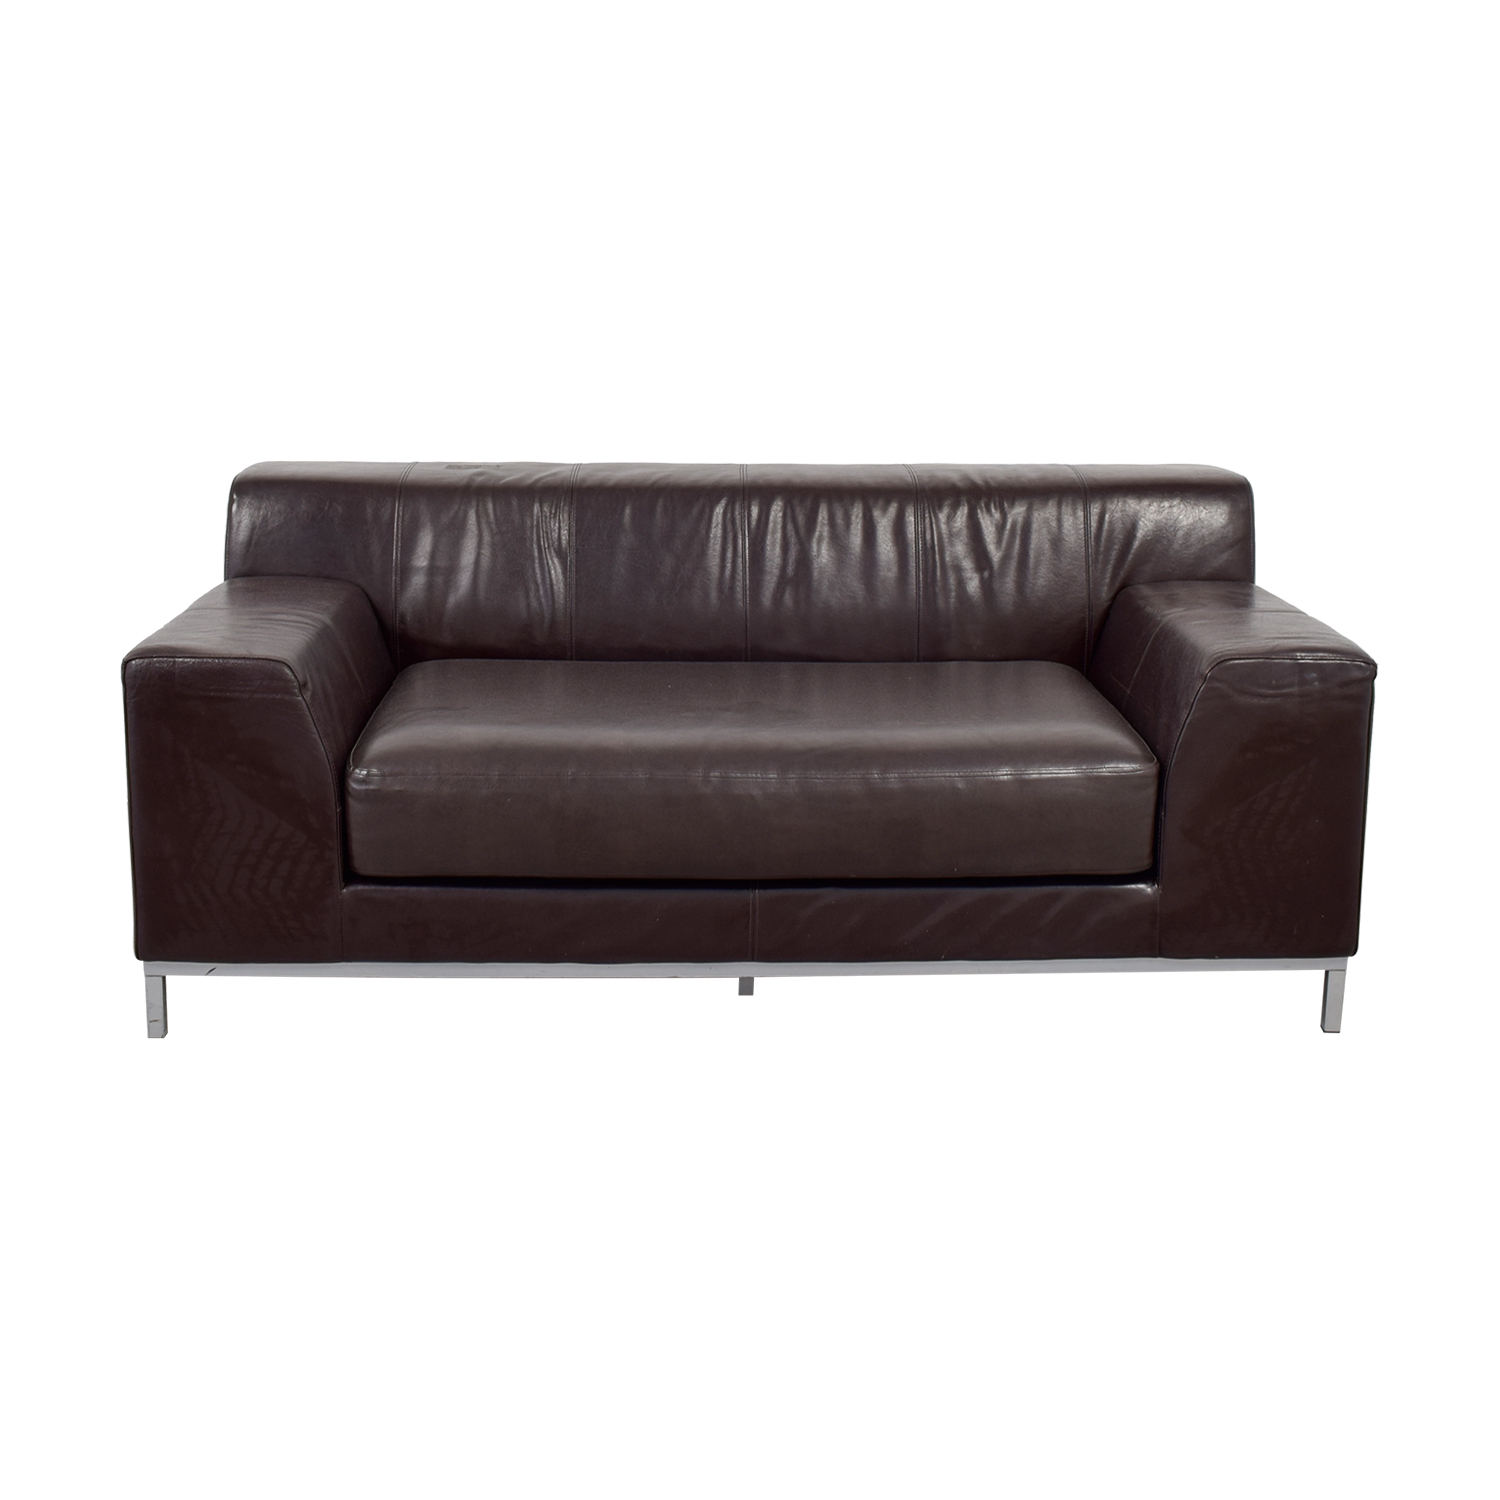 Sofa Ikea Kramfors 90 Off Ikea Ikea Kramfors Brown Leather Love Seat Sofas